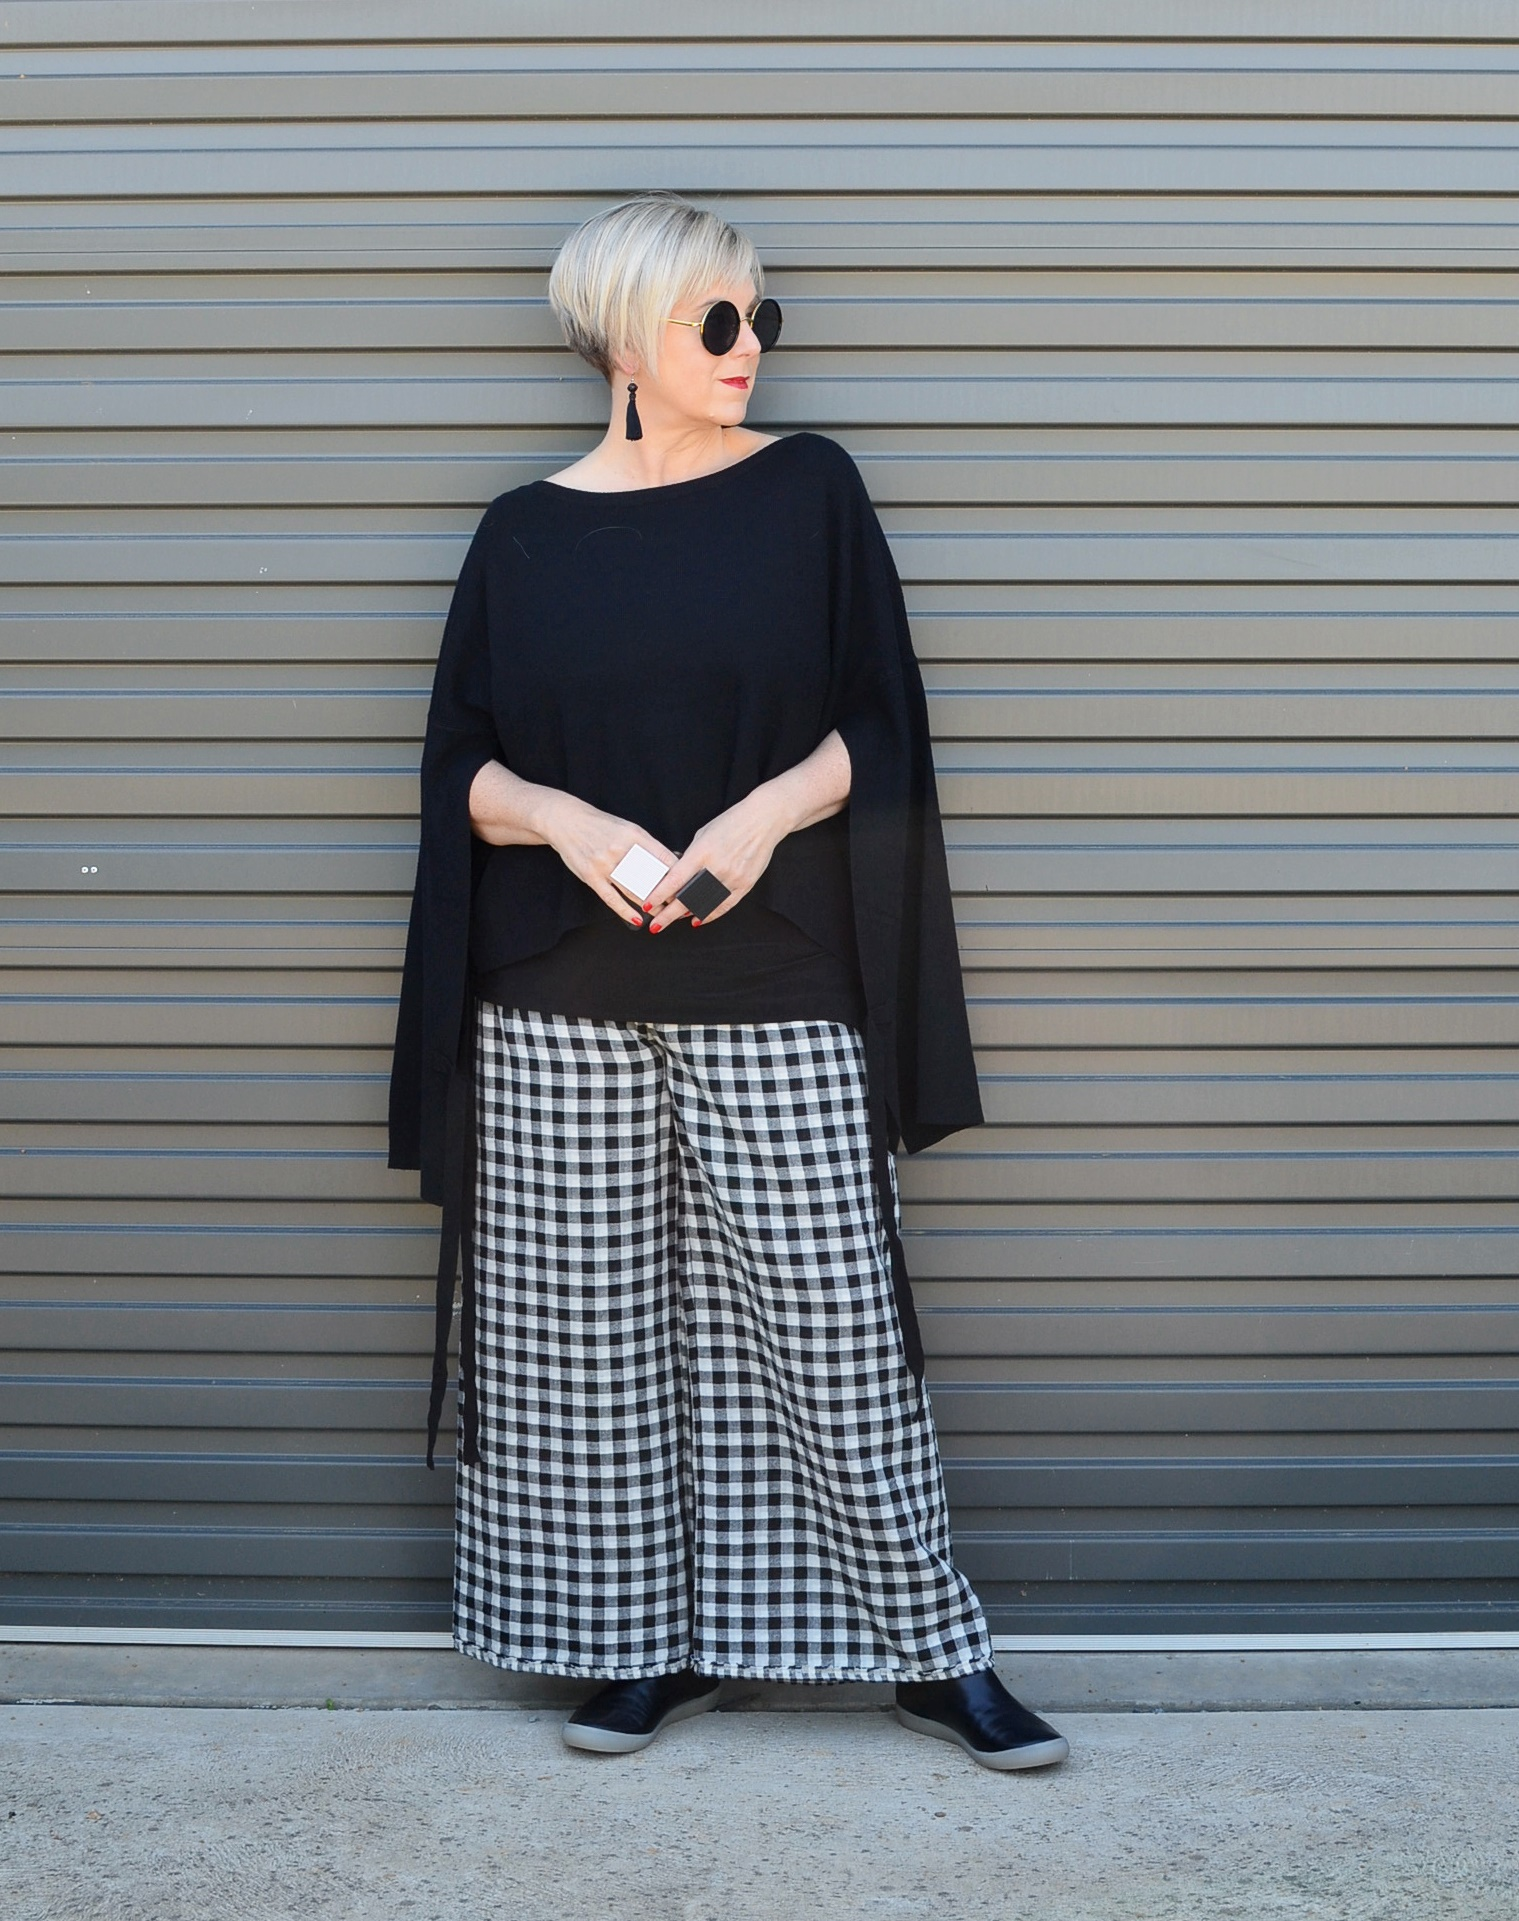 Bold workwear silhouette with gingham pants // A Week Of Elevated Classic Outfits With Deborah Gates From Stylish Murmurs on The Good Trade